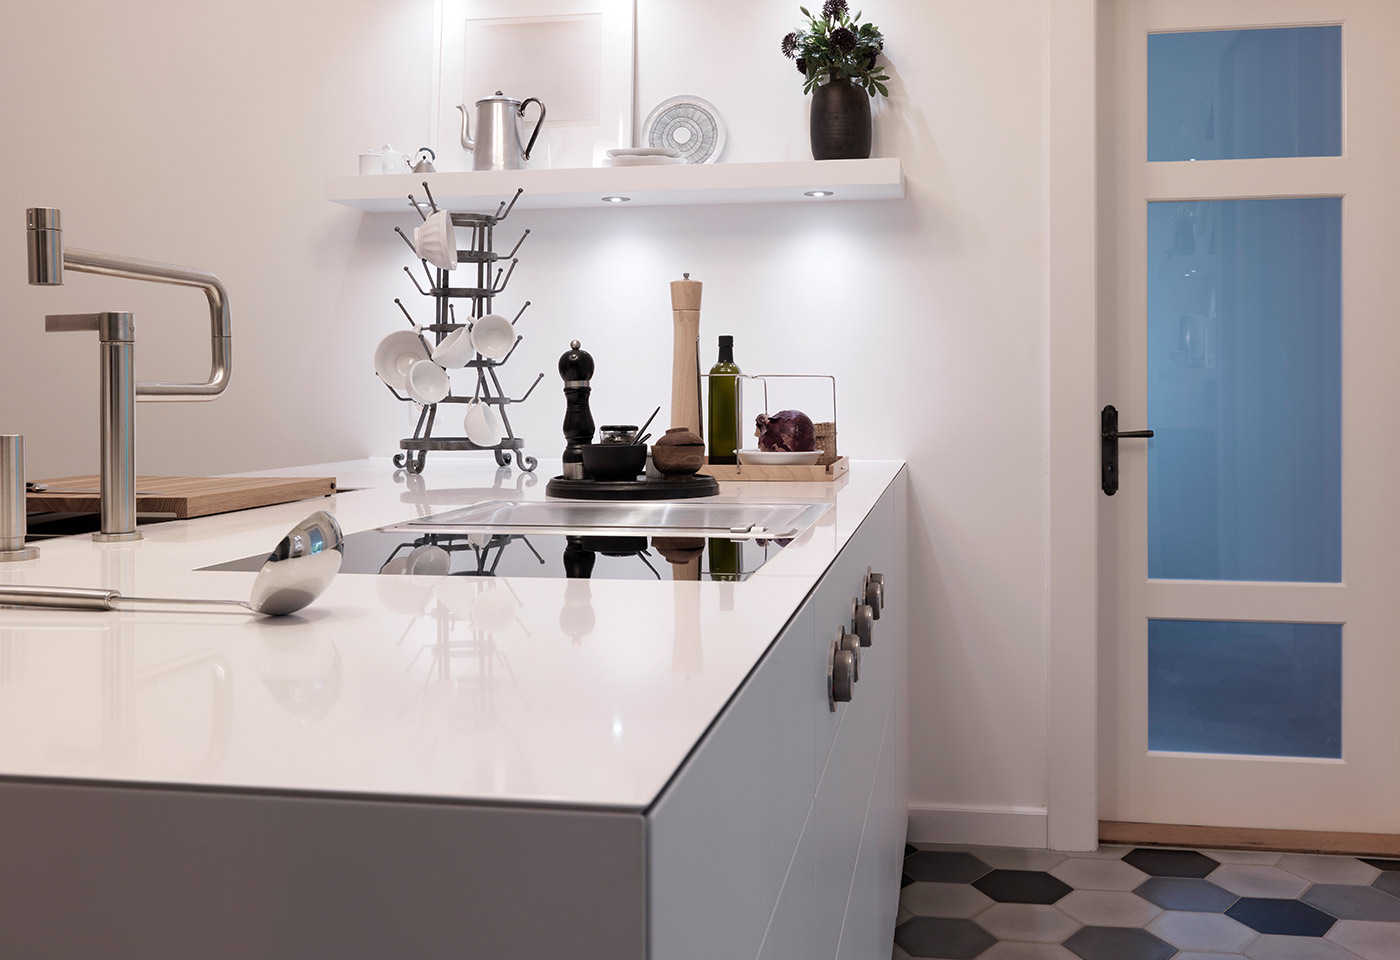 swiss-kitchen-award-2015-bester-umbau-3.jpg